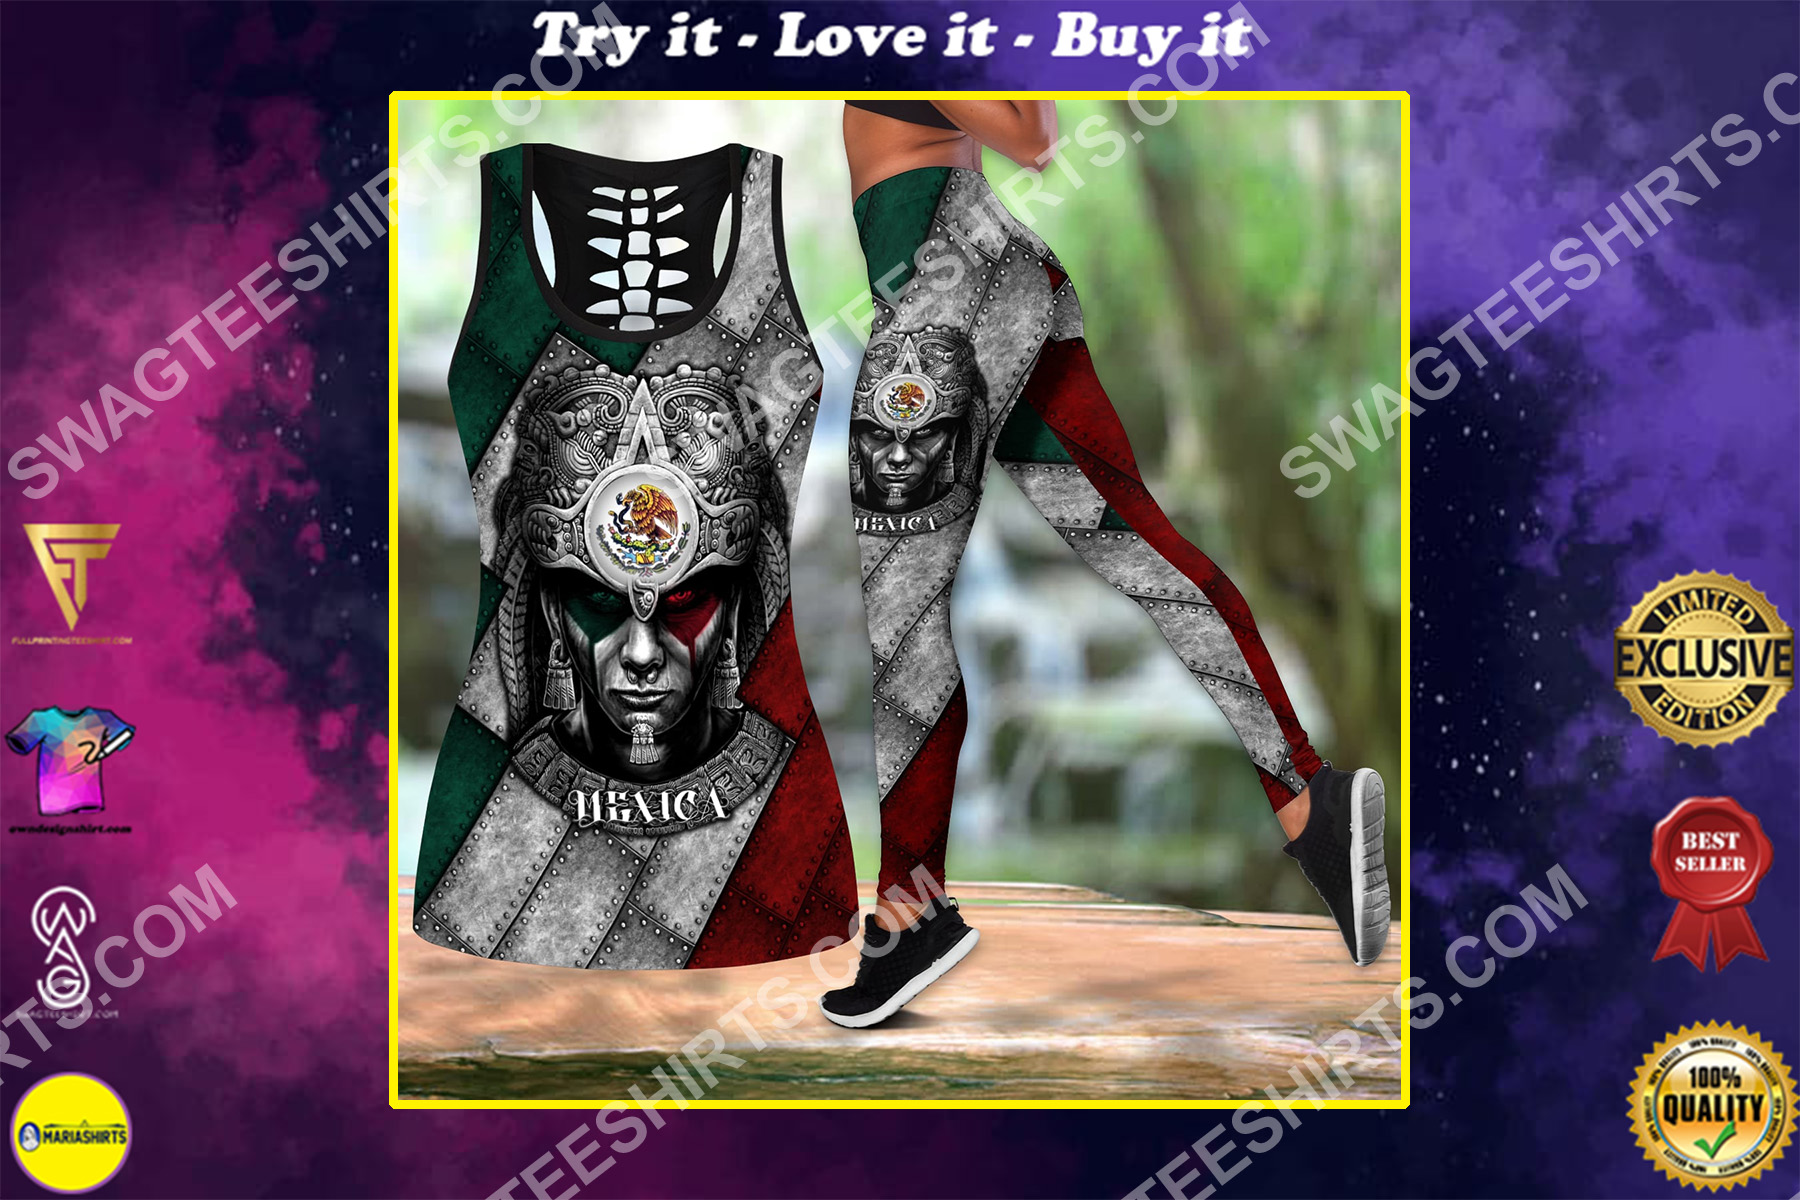 warrior mexica metal all over printed set sports outfit